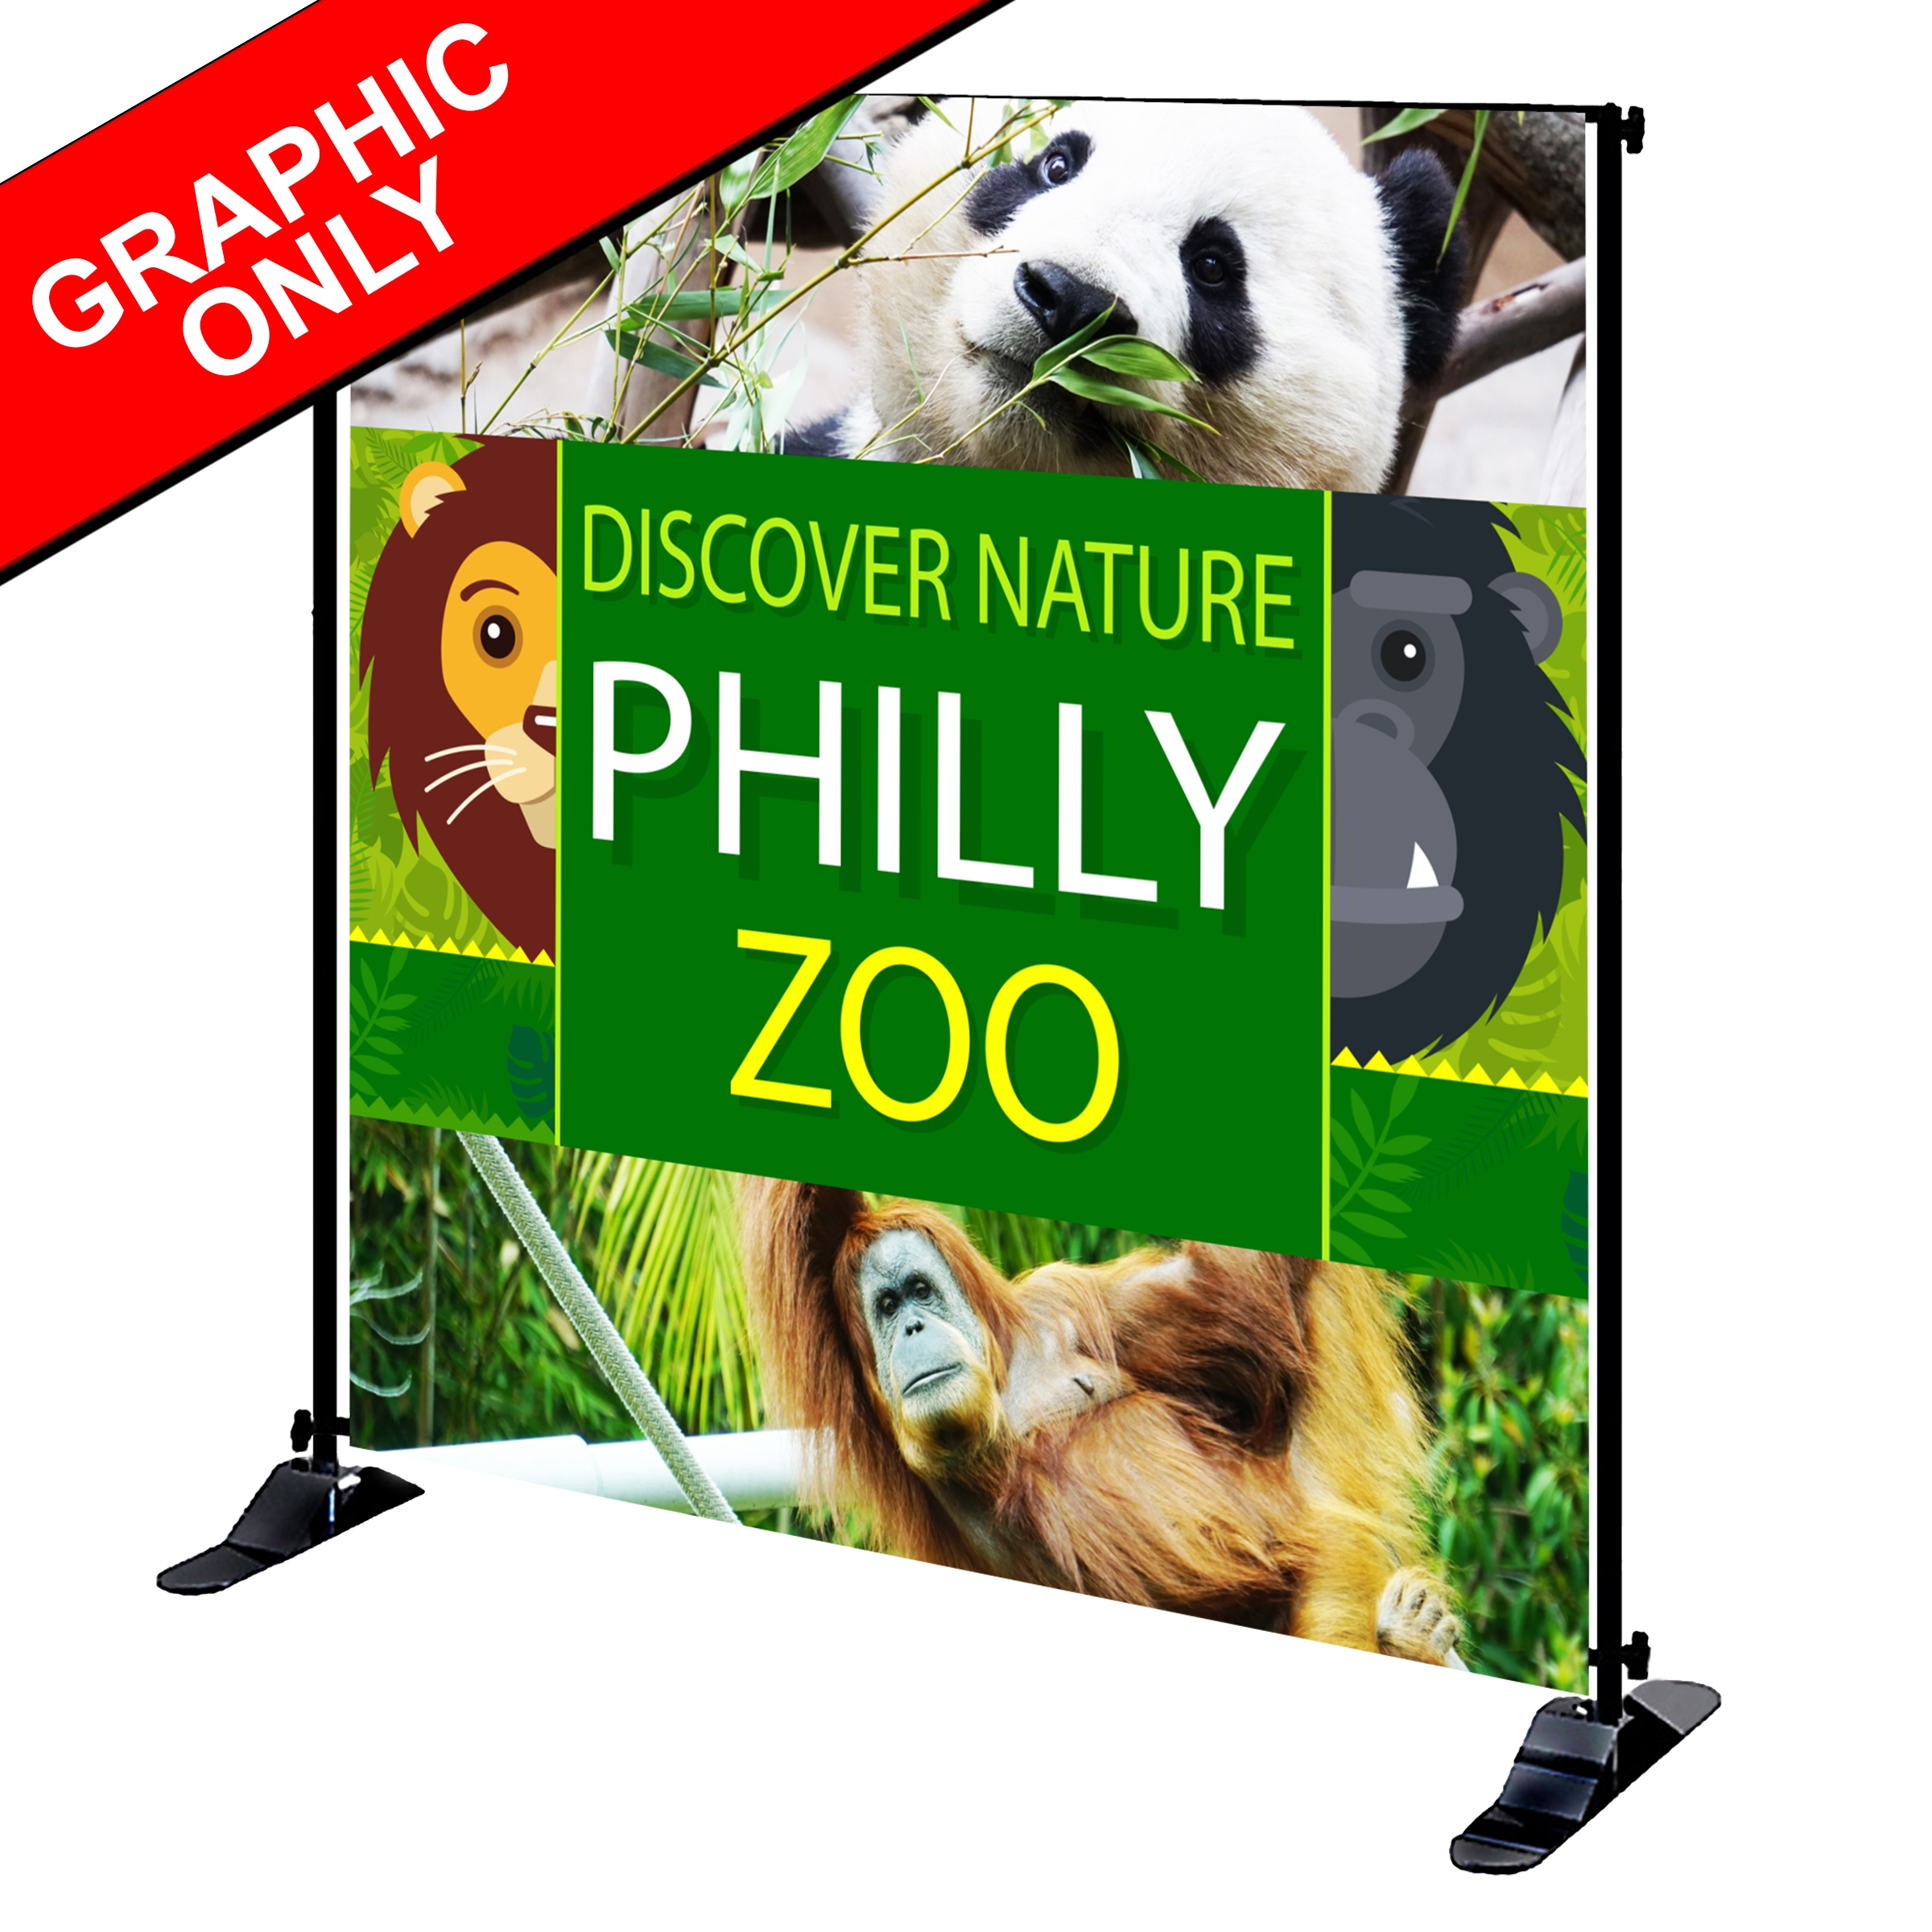 Mighty Banner Display - 8' x 8' Fabric Graphic Only